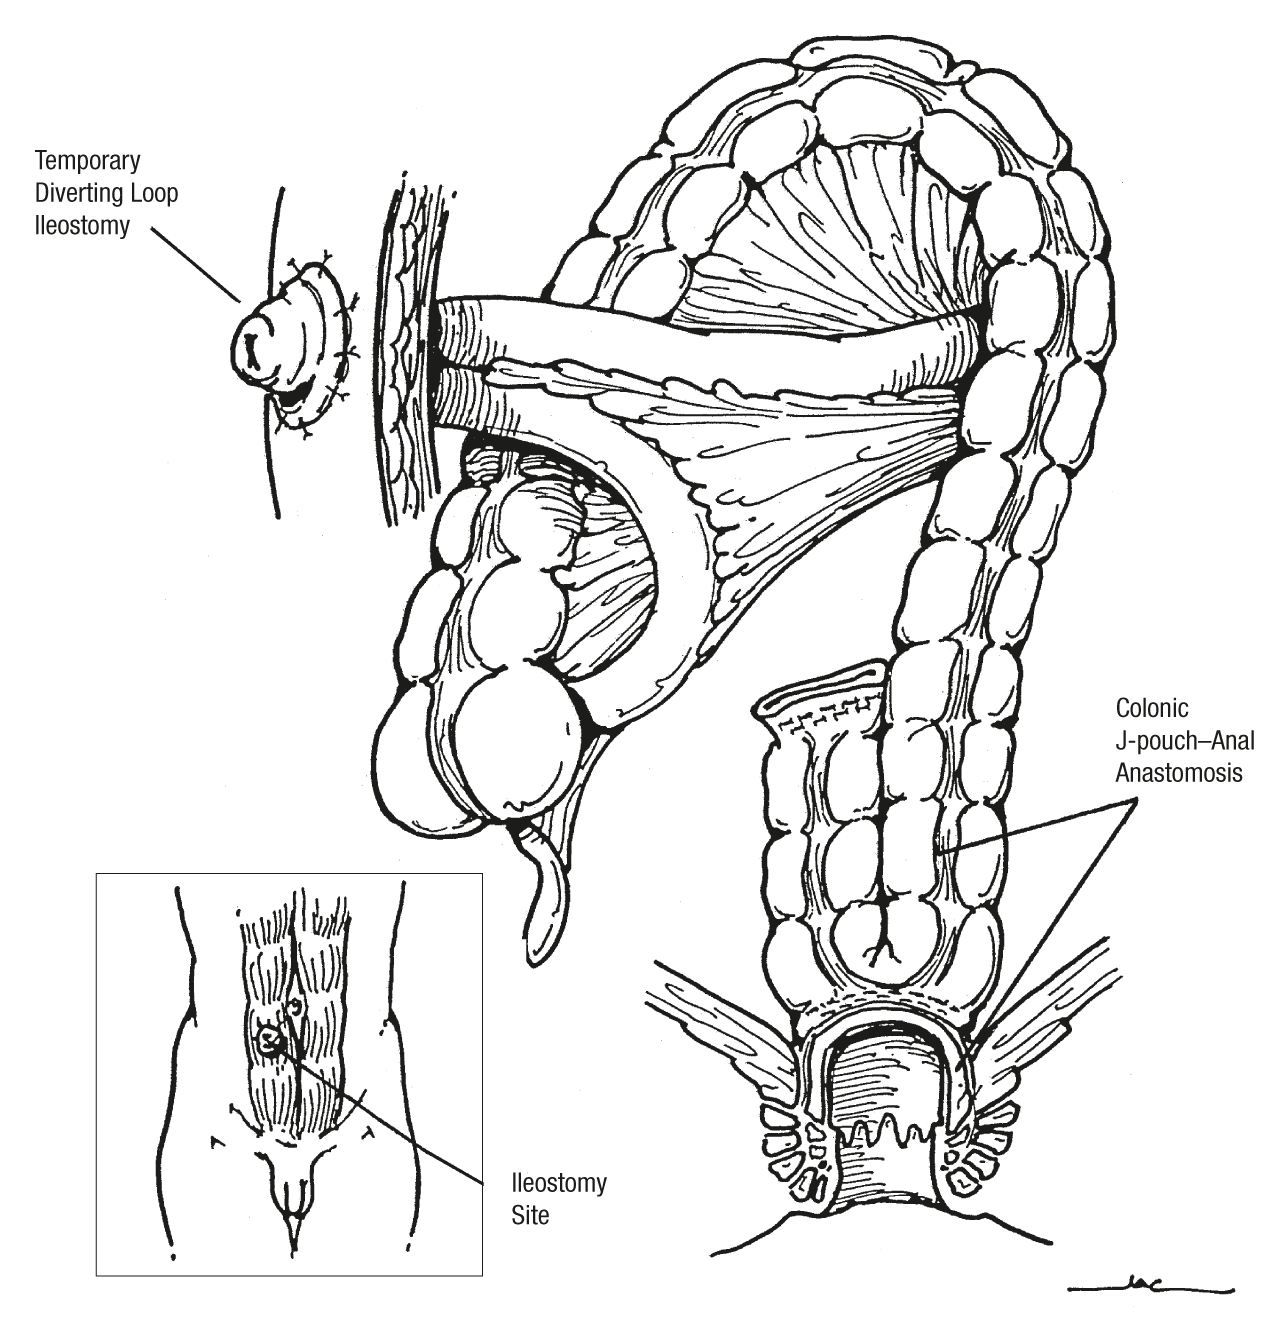 Proctectomy and Coloanal Anastomosis for Rectal Cancer